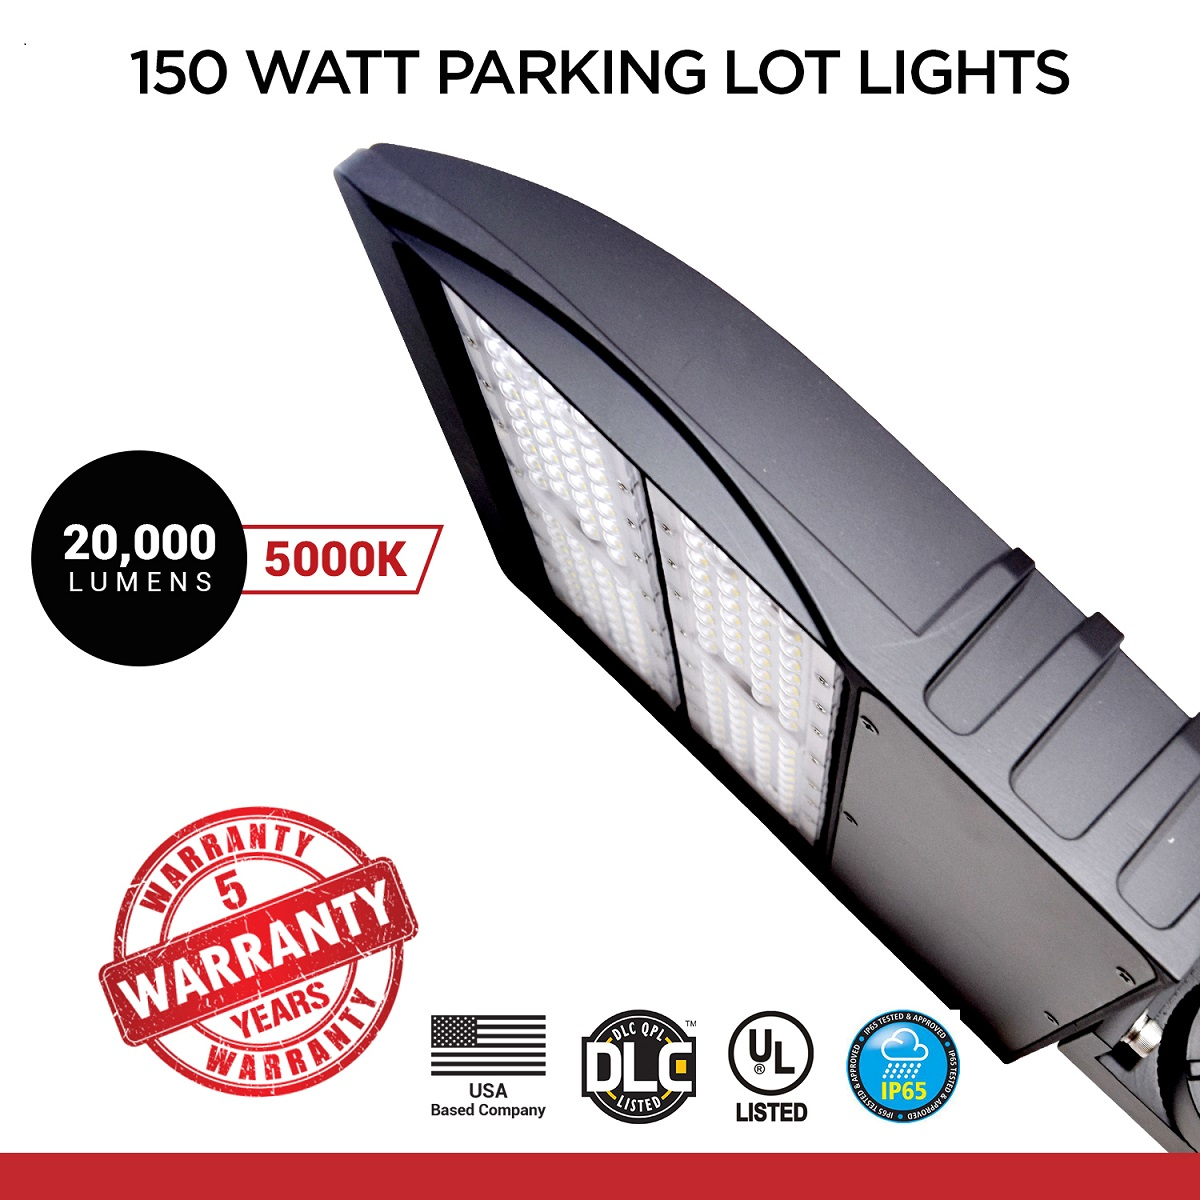 150 Watt LED NextGen Parking Lot Lights